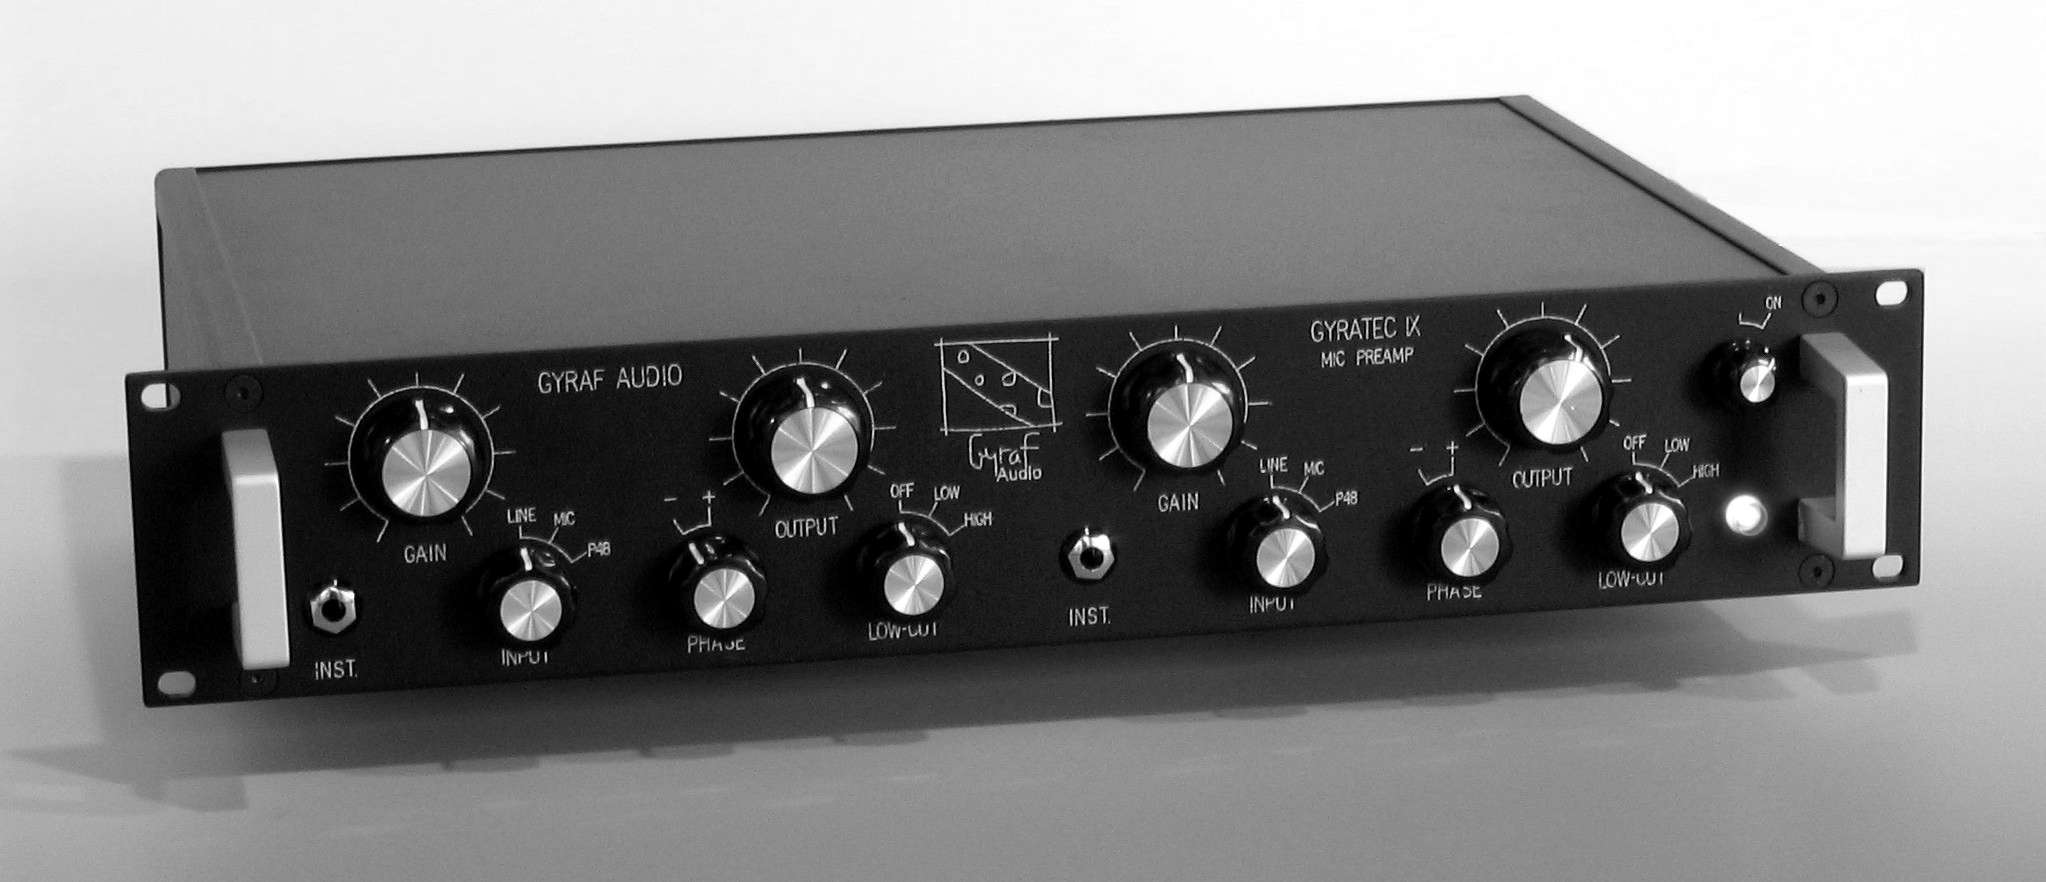 Gyratec G9 Dual Microphone Preamp Gyraf Audio Preamplifier With Tlc251